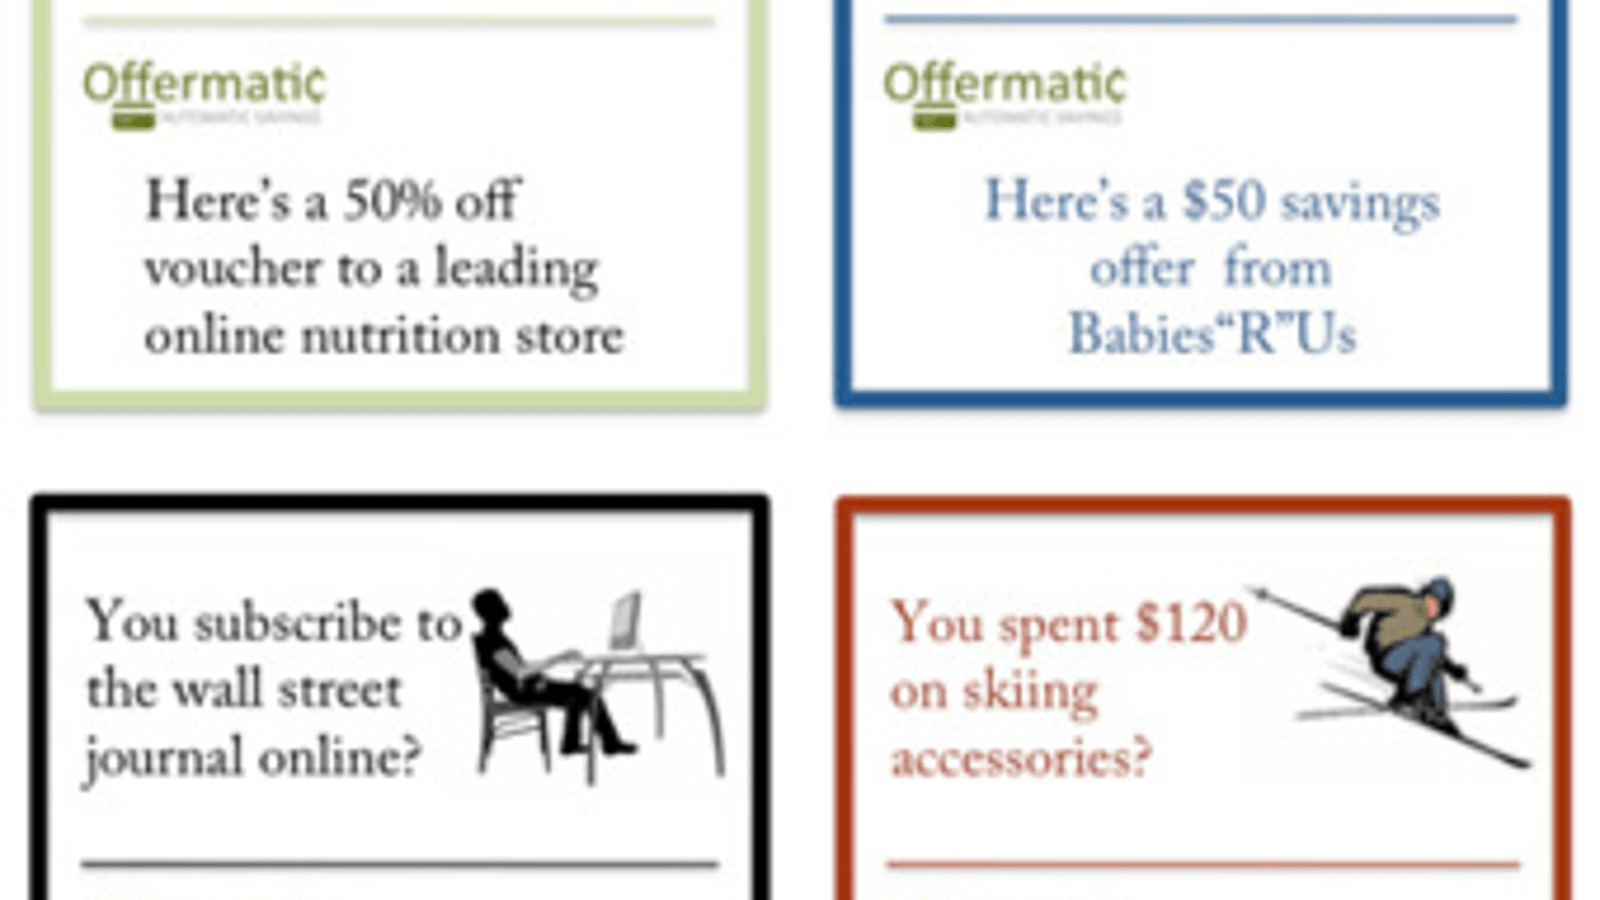 Offermatic Gives You Sizeable Discounts Based On Your Spending Habits